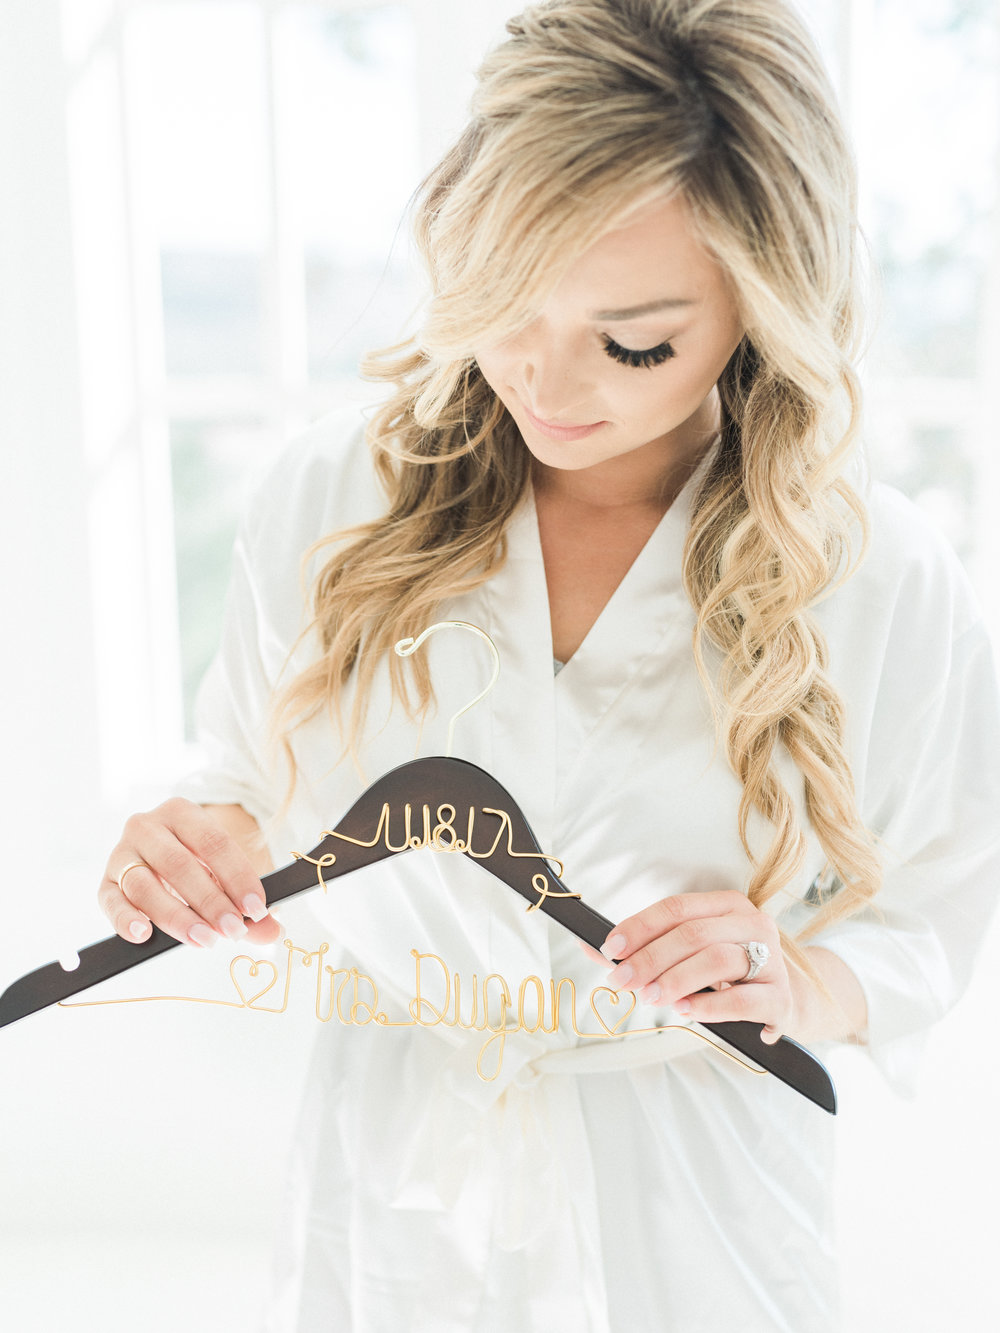 bride to be-bridal beauty-wedding day inspiration-san diego-thevanitybelle.com-blonde hair-